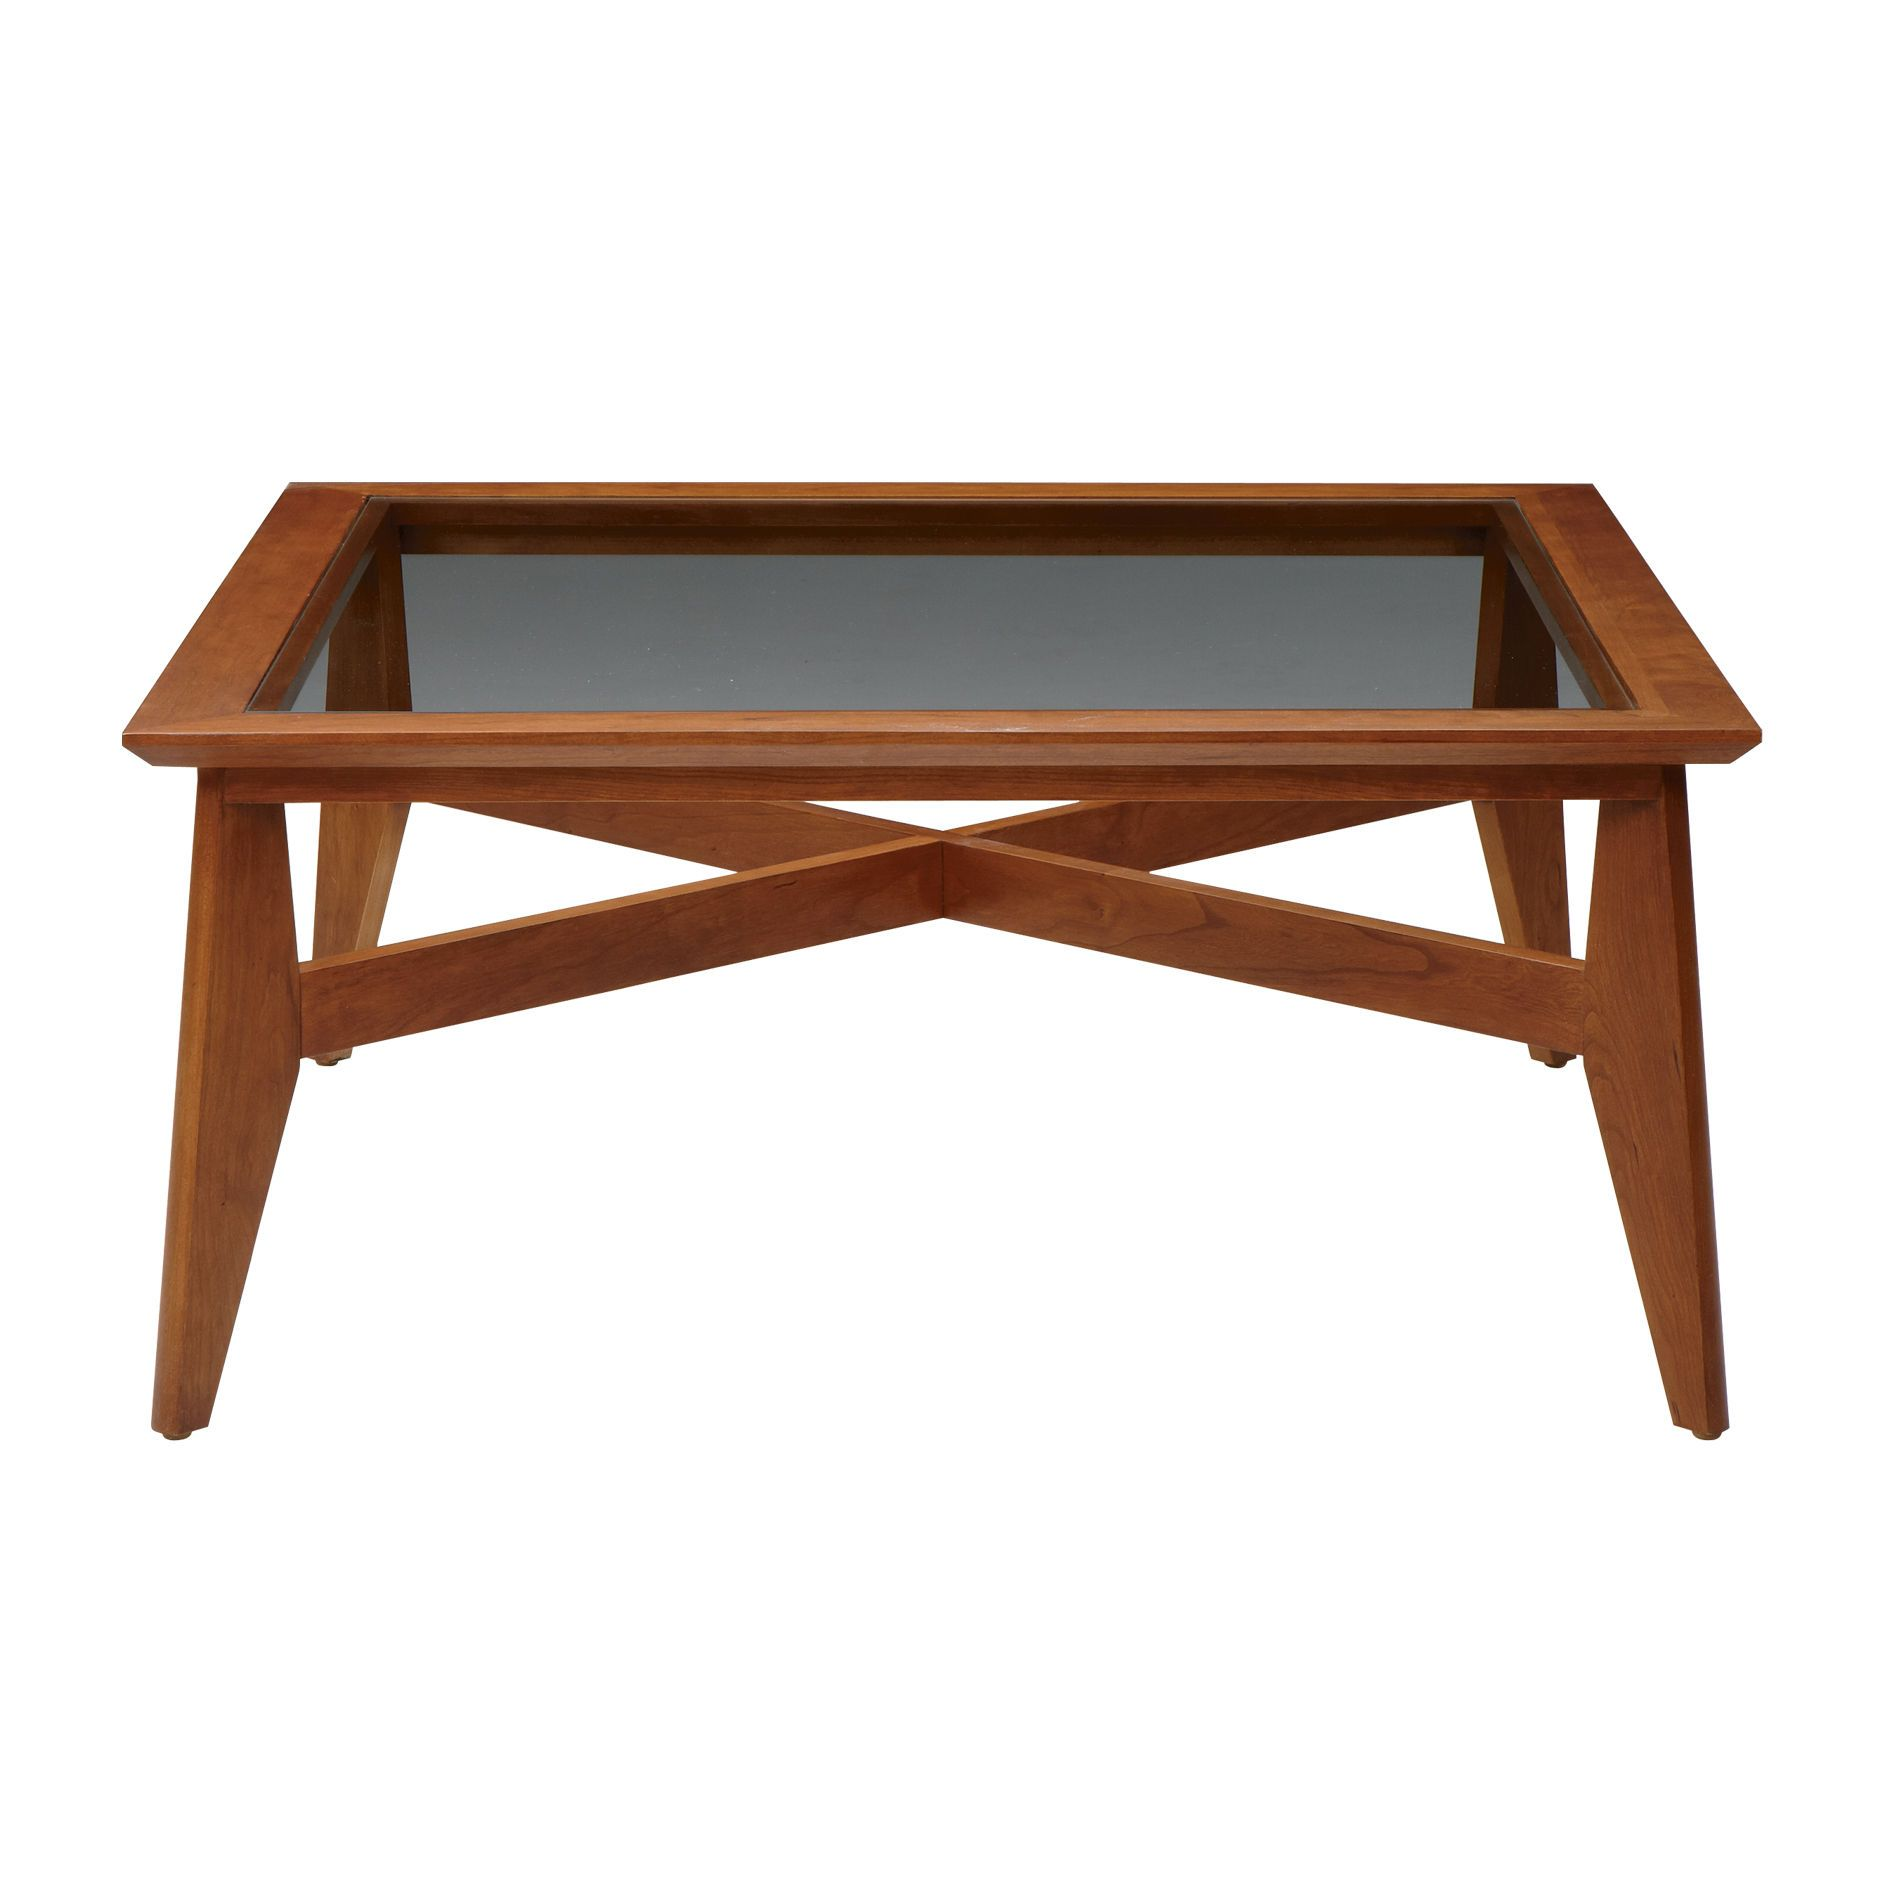 Ethan Allen Oval Glass Top Coffee Table: Ethan Allen $636 38 X 38 X 17.5